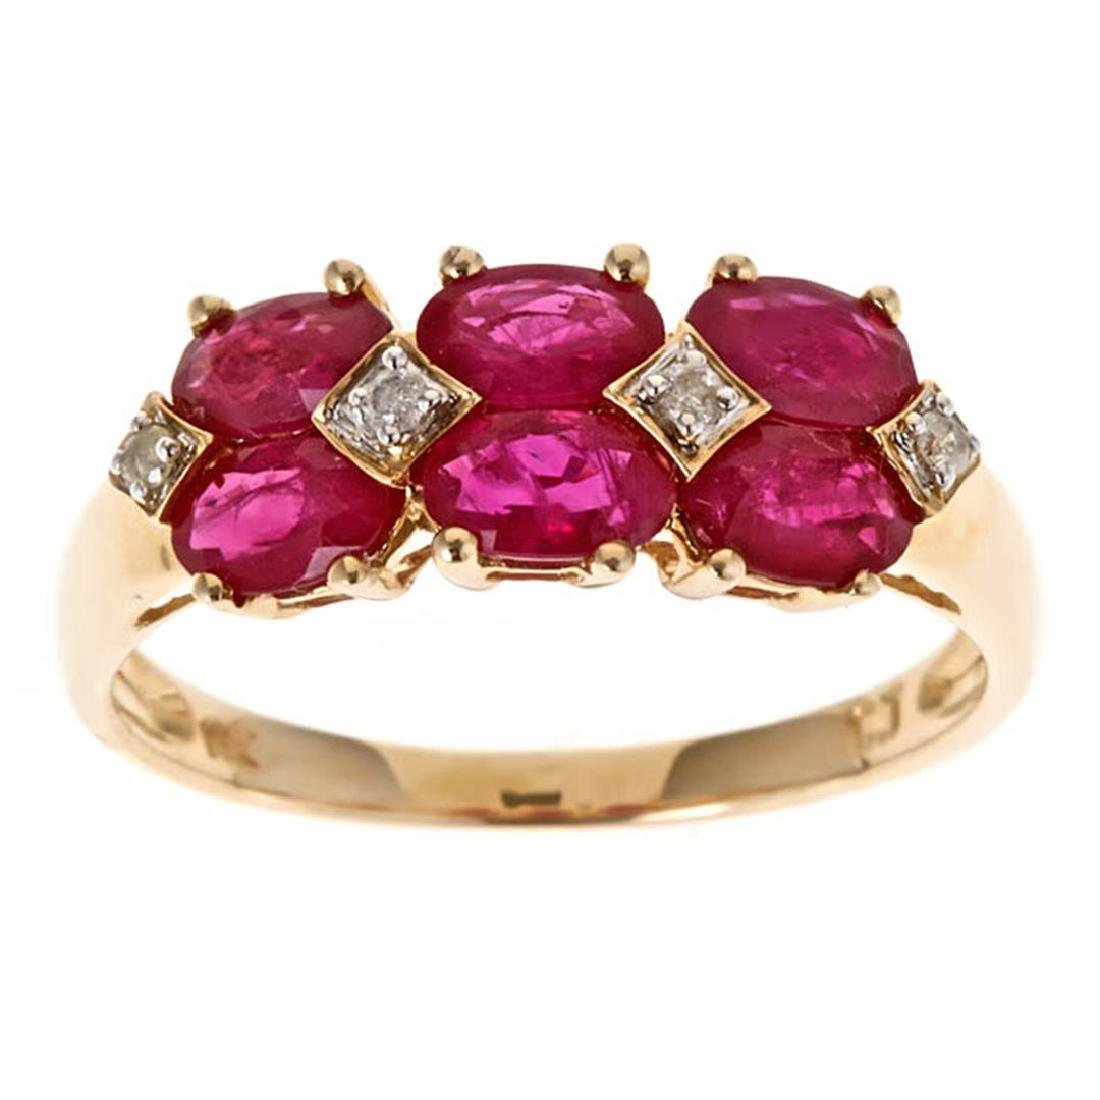 2.09 ctw Ruby and Diamond Ring - 14KT Yellow Gold